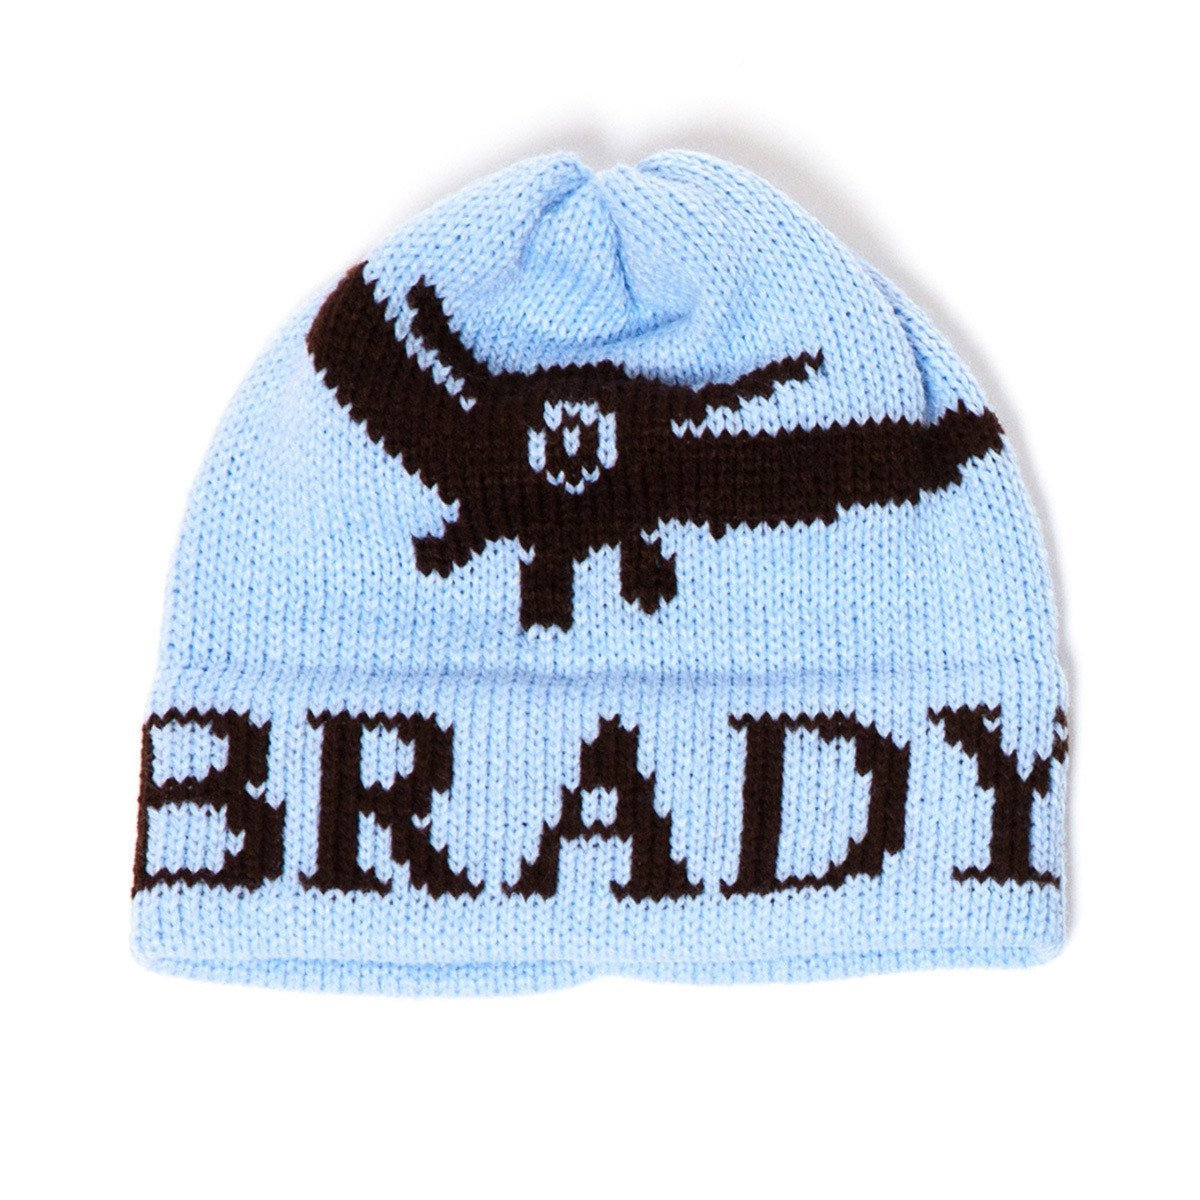 Fly Away Personalized Knit Hat-Hats-Jack and Jill Boutique